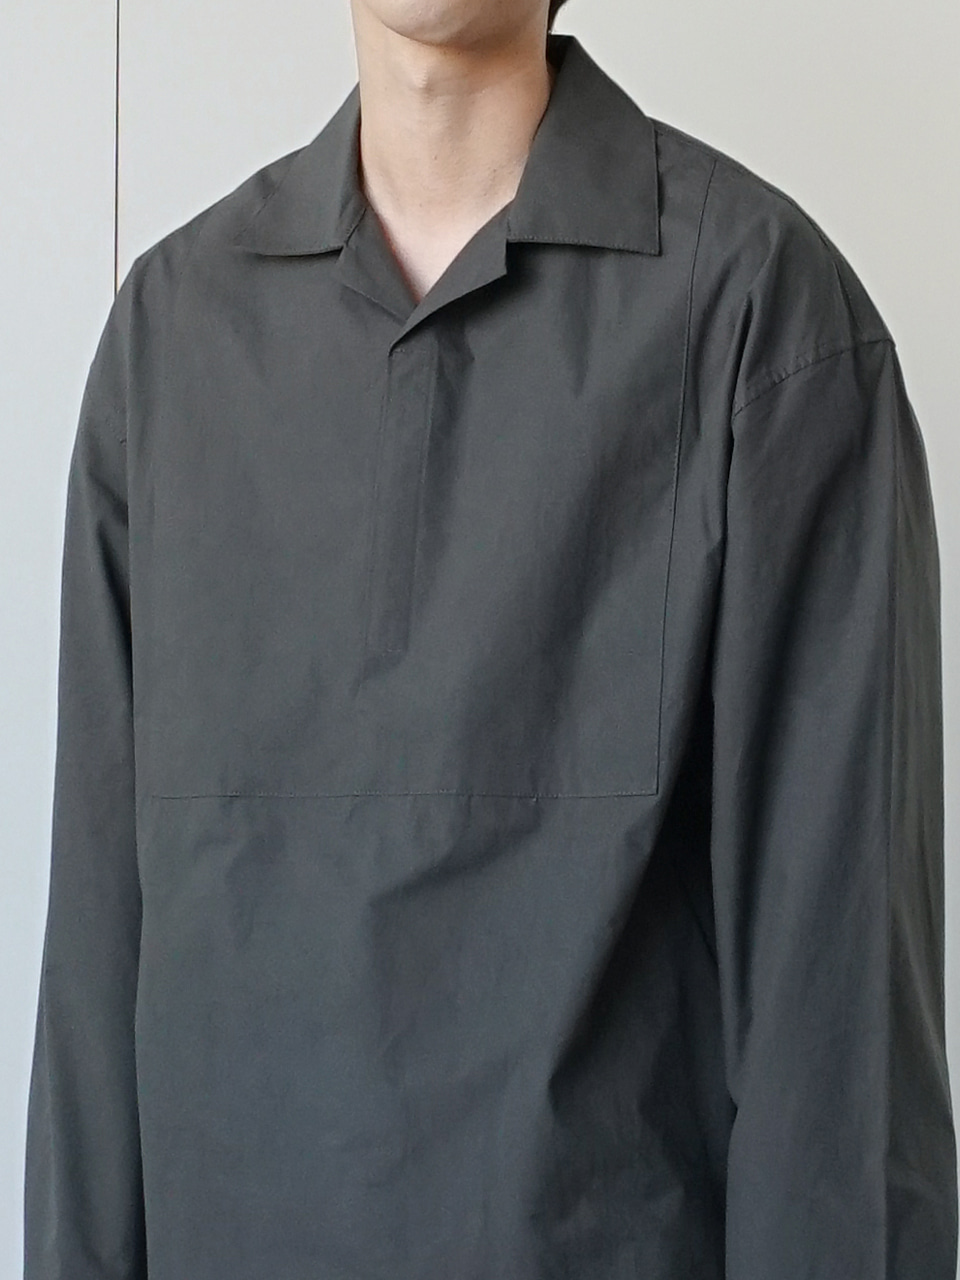 Concept Velcro Shirt (2color)